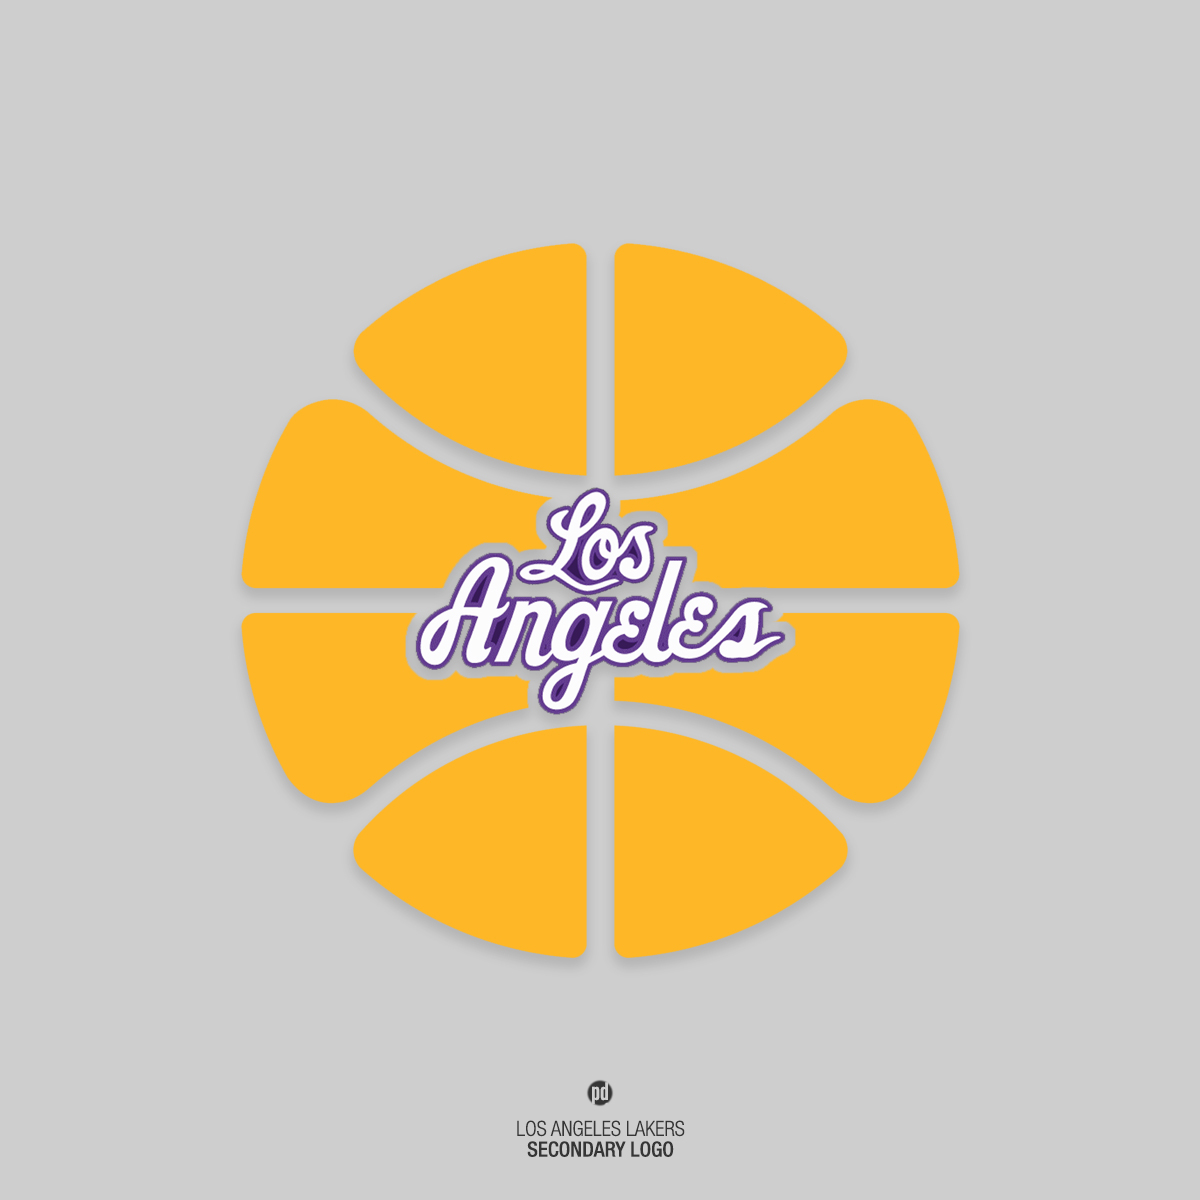 Los angeles lakers rebrand on behance voltagebd Image collections